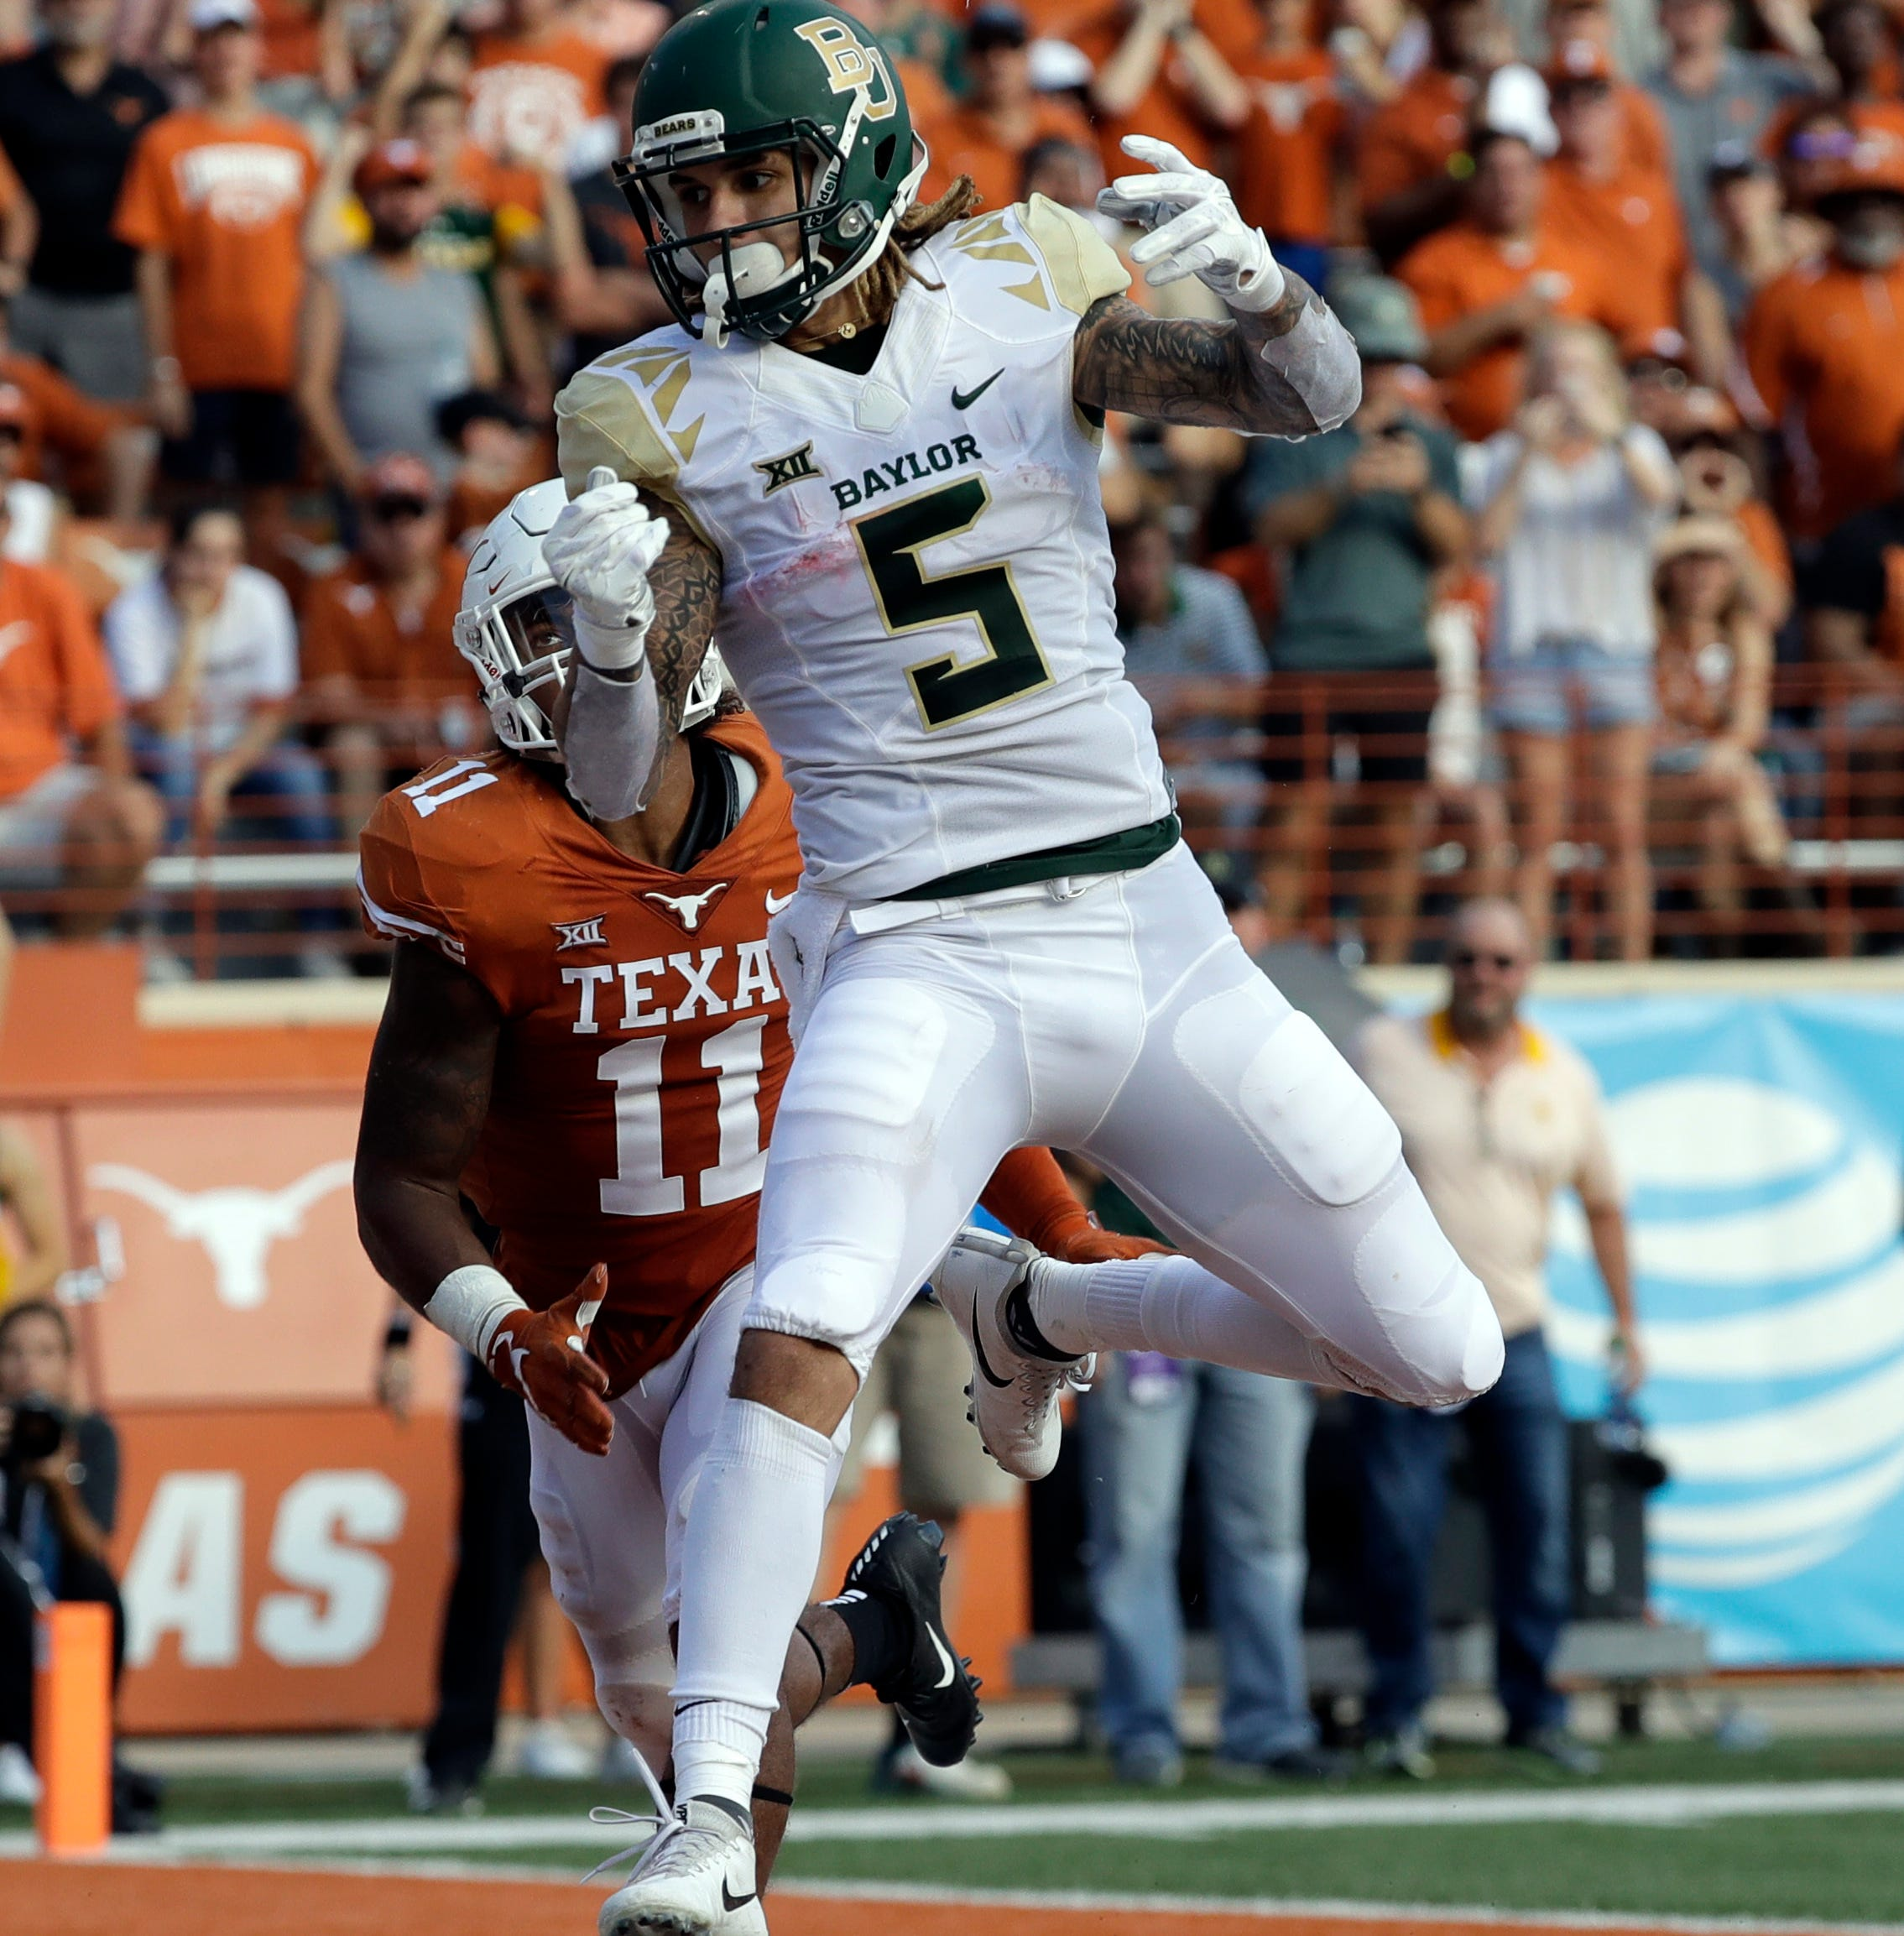 At NFL combine, Baylor WR Jalen Hurd has explaining to do — including why he left Vols